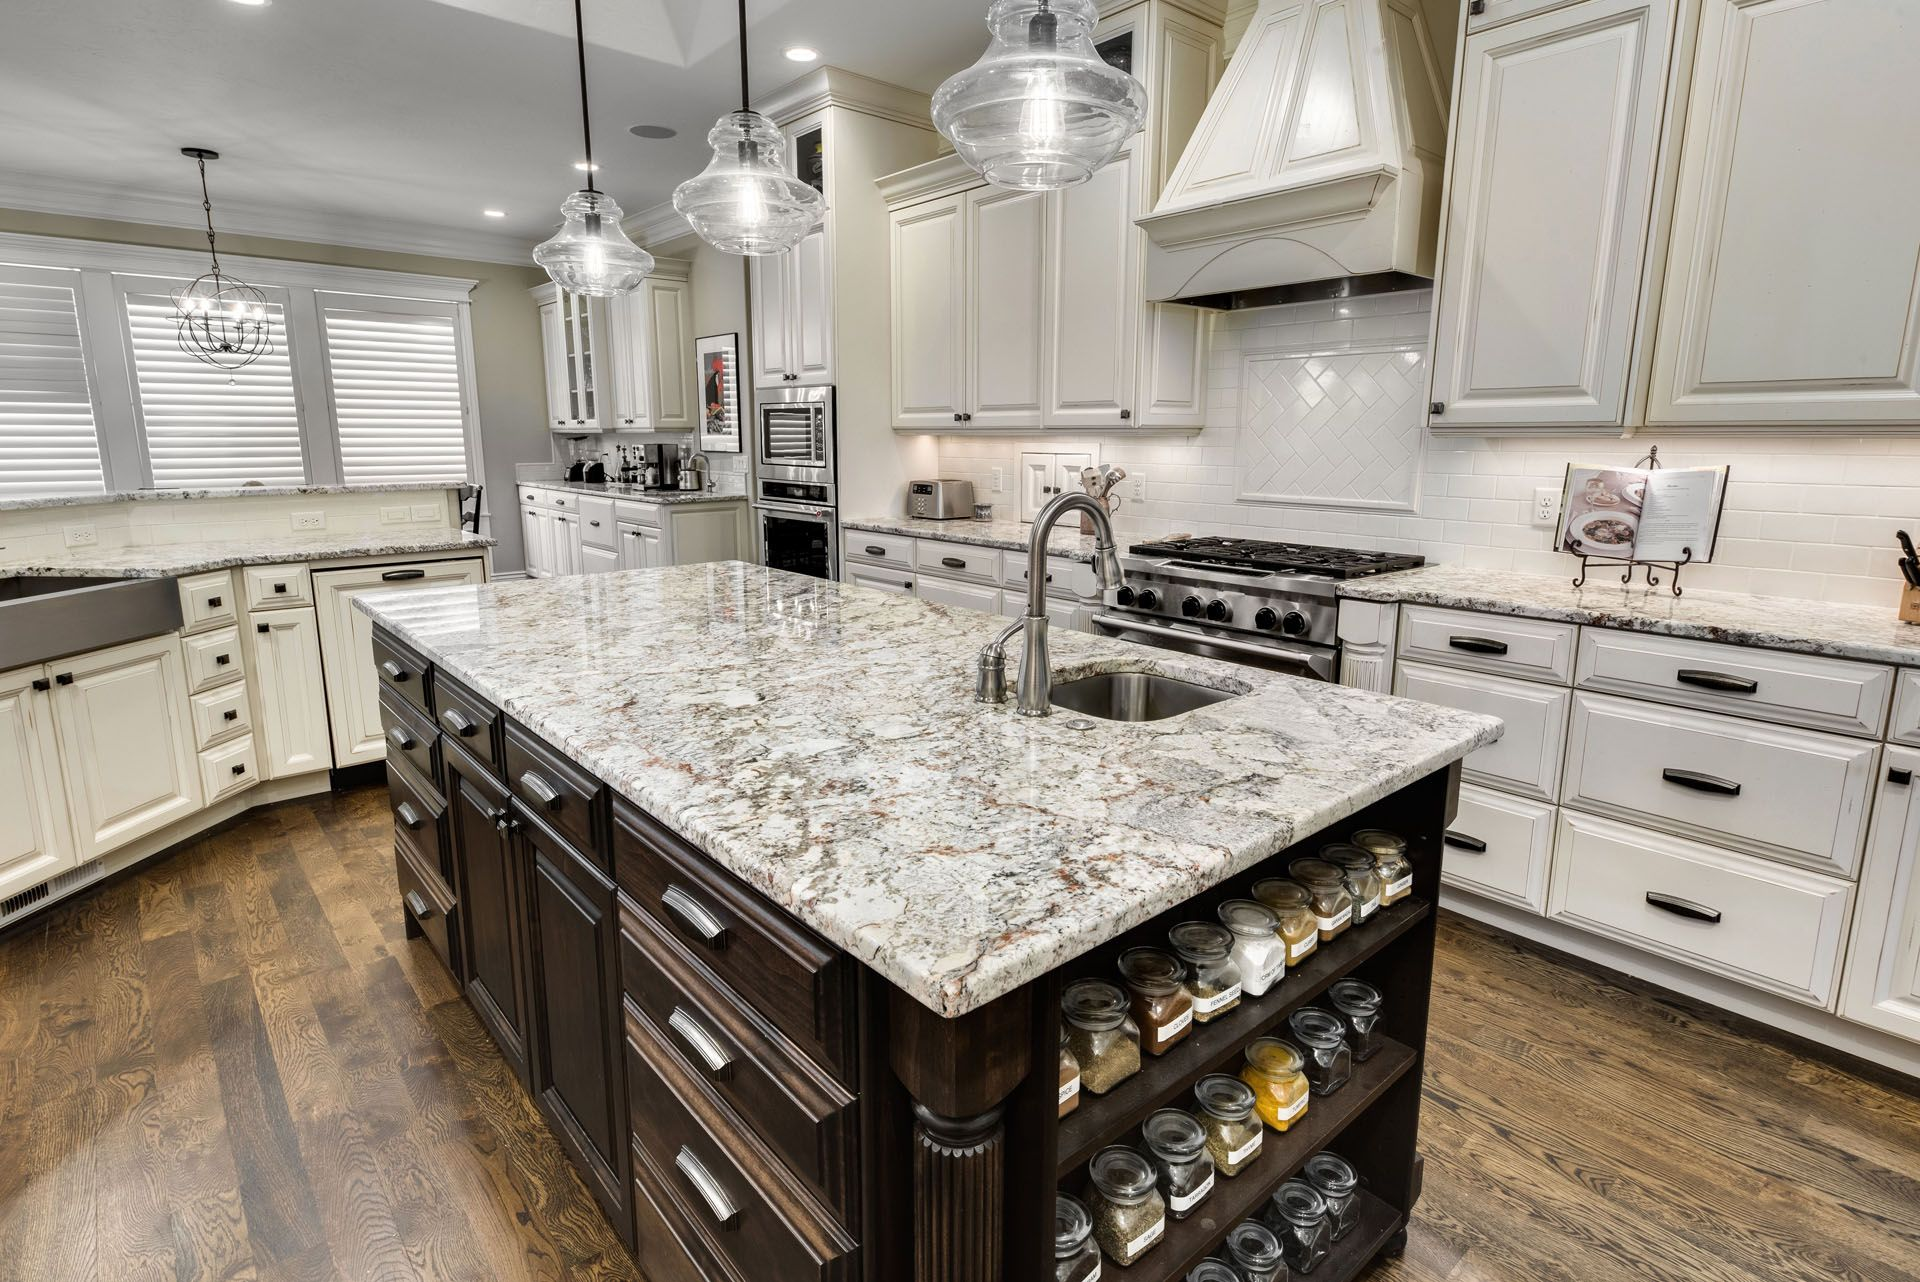 Blue Nile Granite Island And Perimeter Atop Mixed Stained